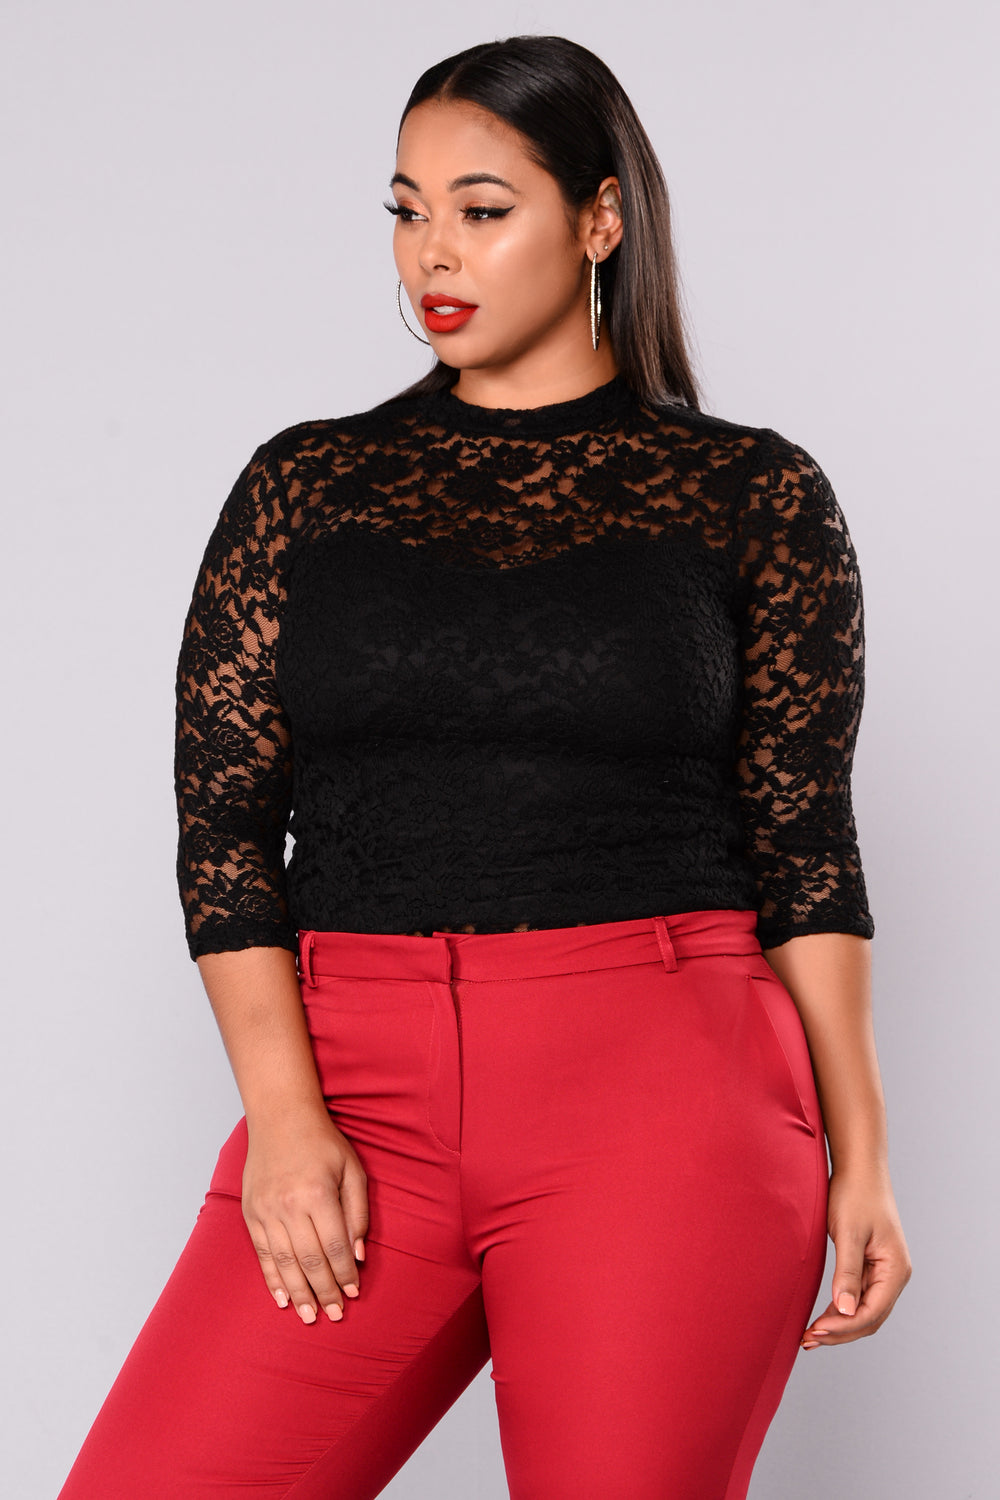 Keeping It Classy Lace Top - Black